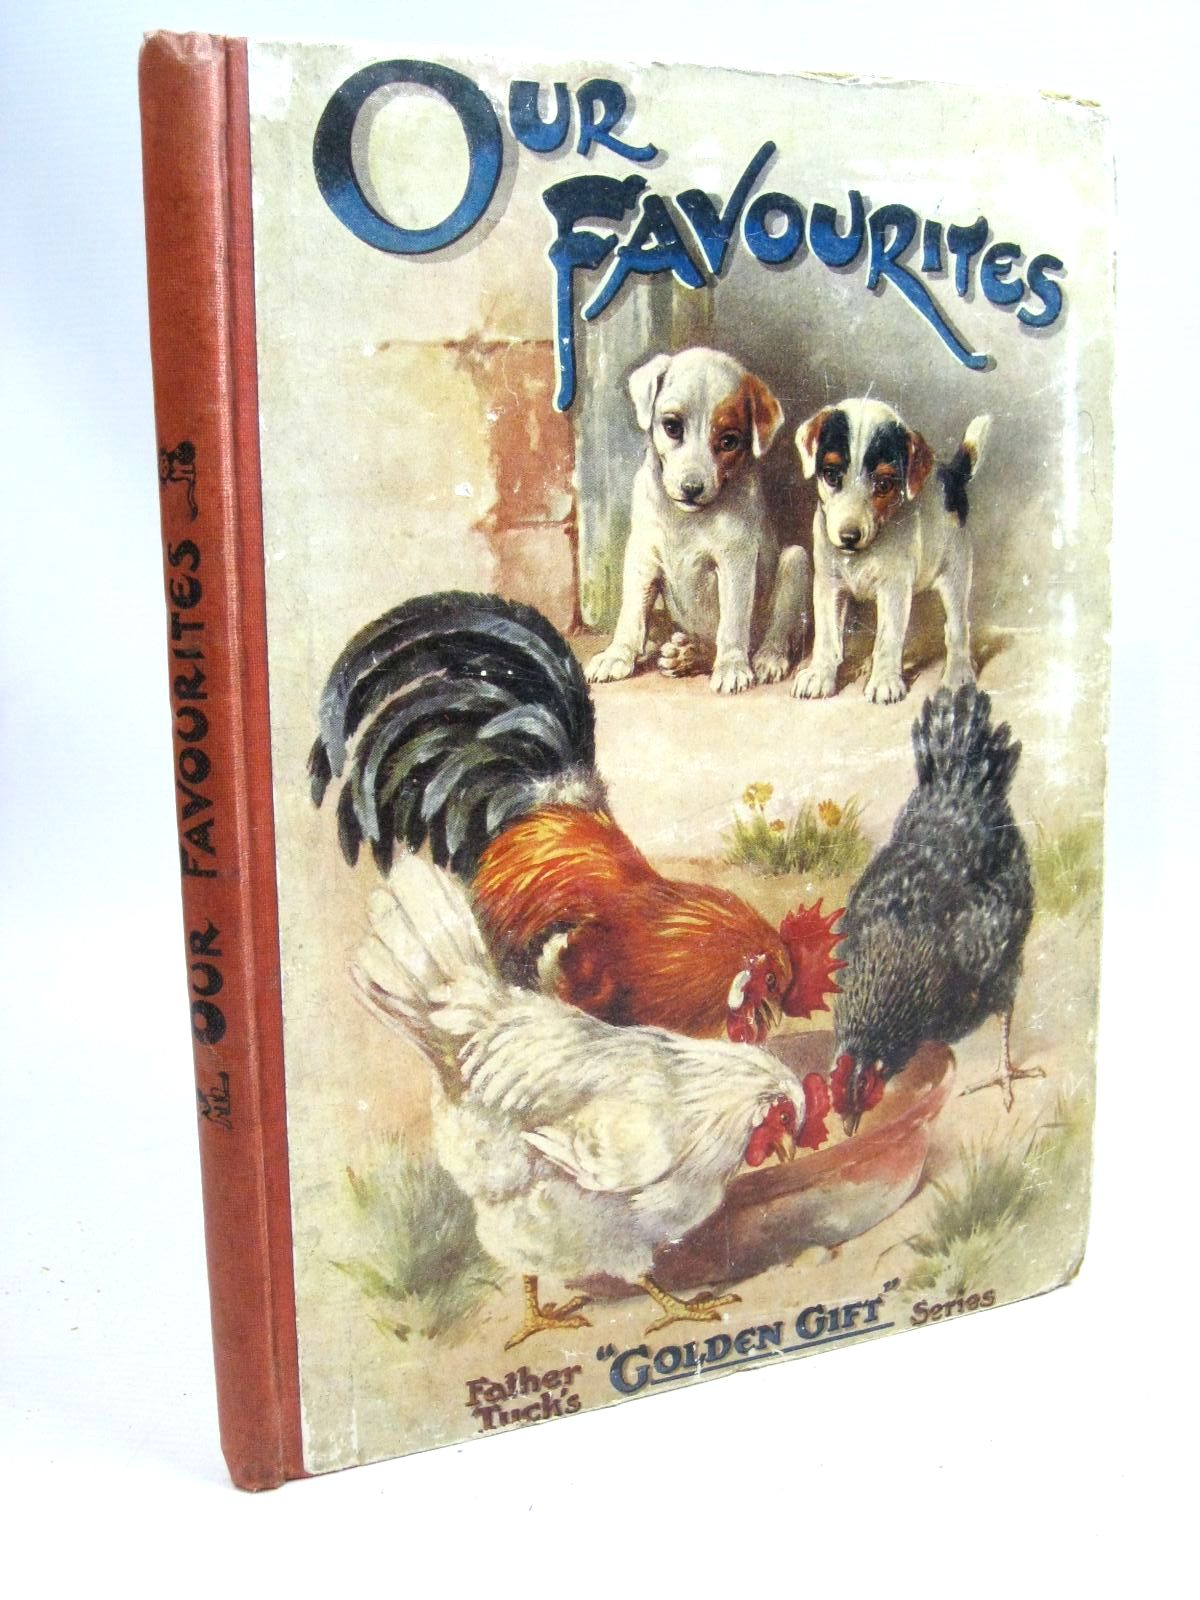 Photo of OUR FAVOURITES written by Vredenburg, Edric Hart, Hilda Floyd, Grace C. Scott-Hopper, Queenie Talbot, Ethel et al, illustrated by Bowley, A.L. Cobb, Ruth Kidman, Leigh Thompson, G.H. Wain, Louis et al., published by Raphael Tuck & Sons Ltd. (STOCK CODE: 1505975)  for sale by Stella & Rose's Books